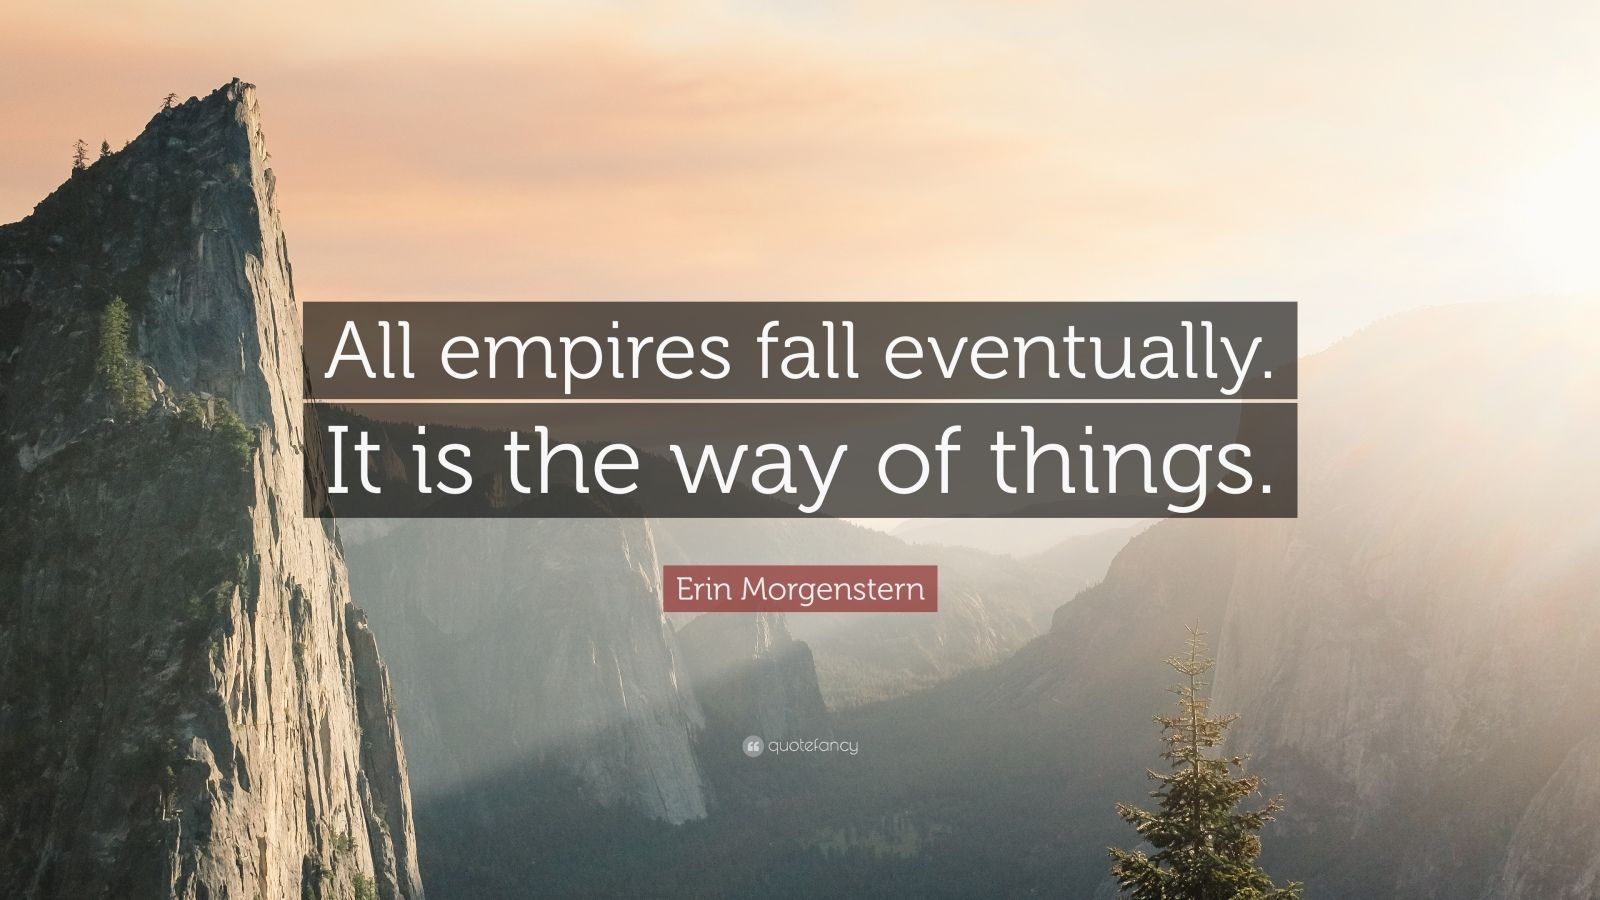 Theodore Roosevelt Quotes Wallpaper Erin Morgenstern Quote All Empires Fall Eventually It